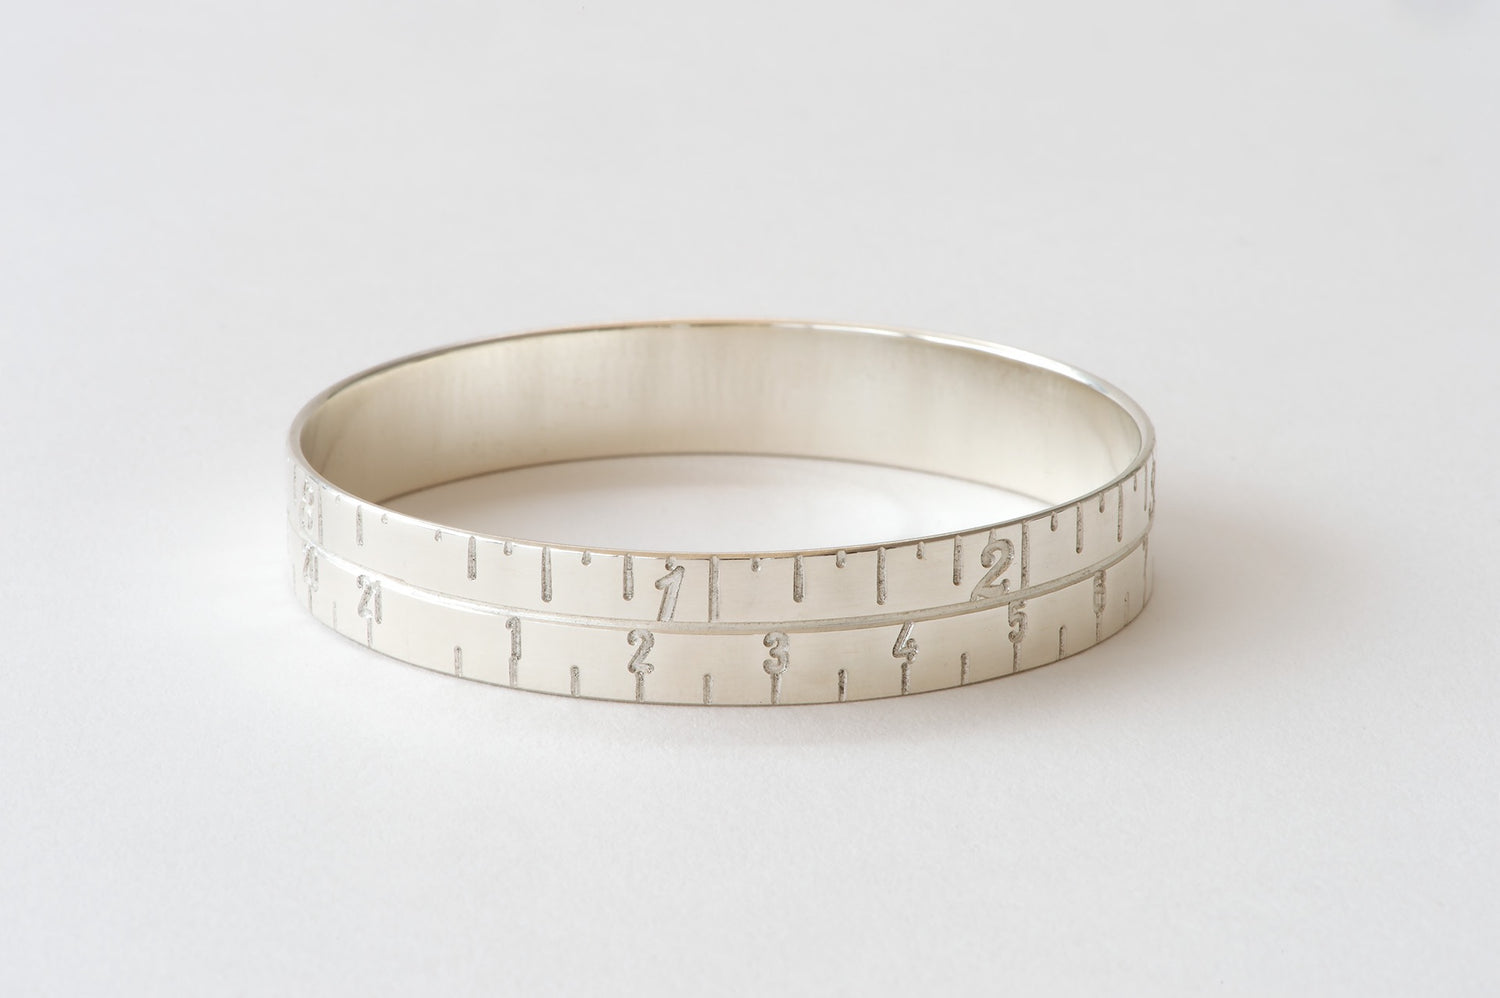 Narrow Tape Measure Bangle - silver